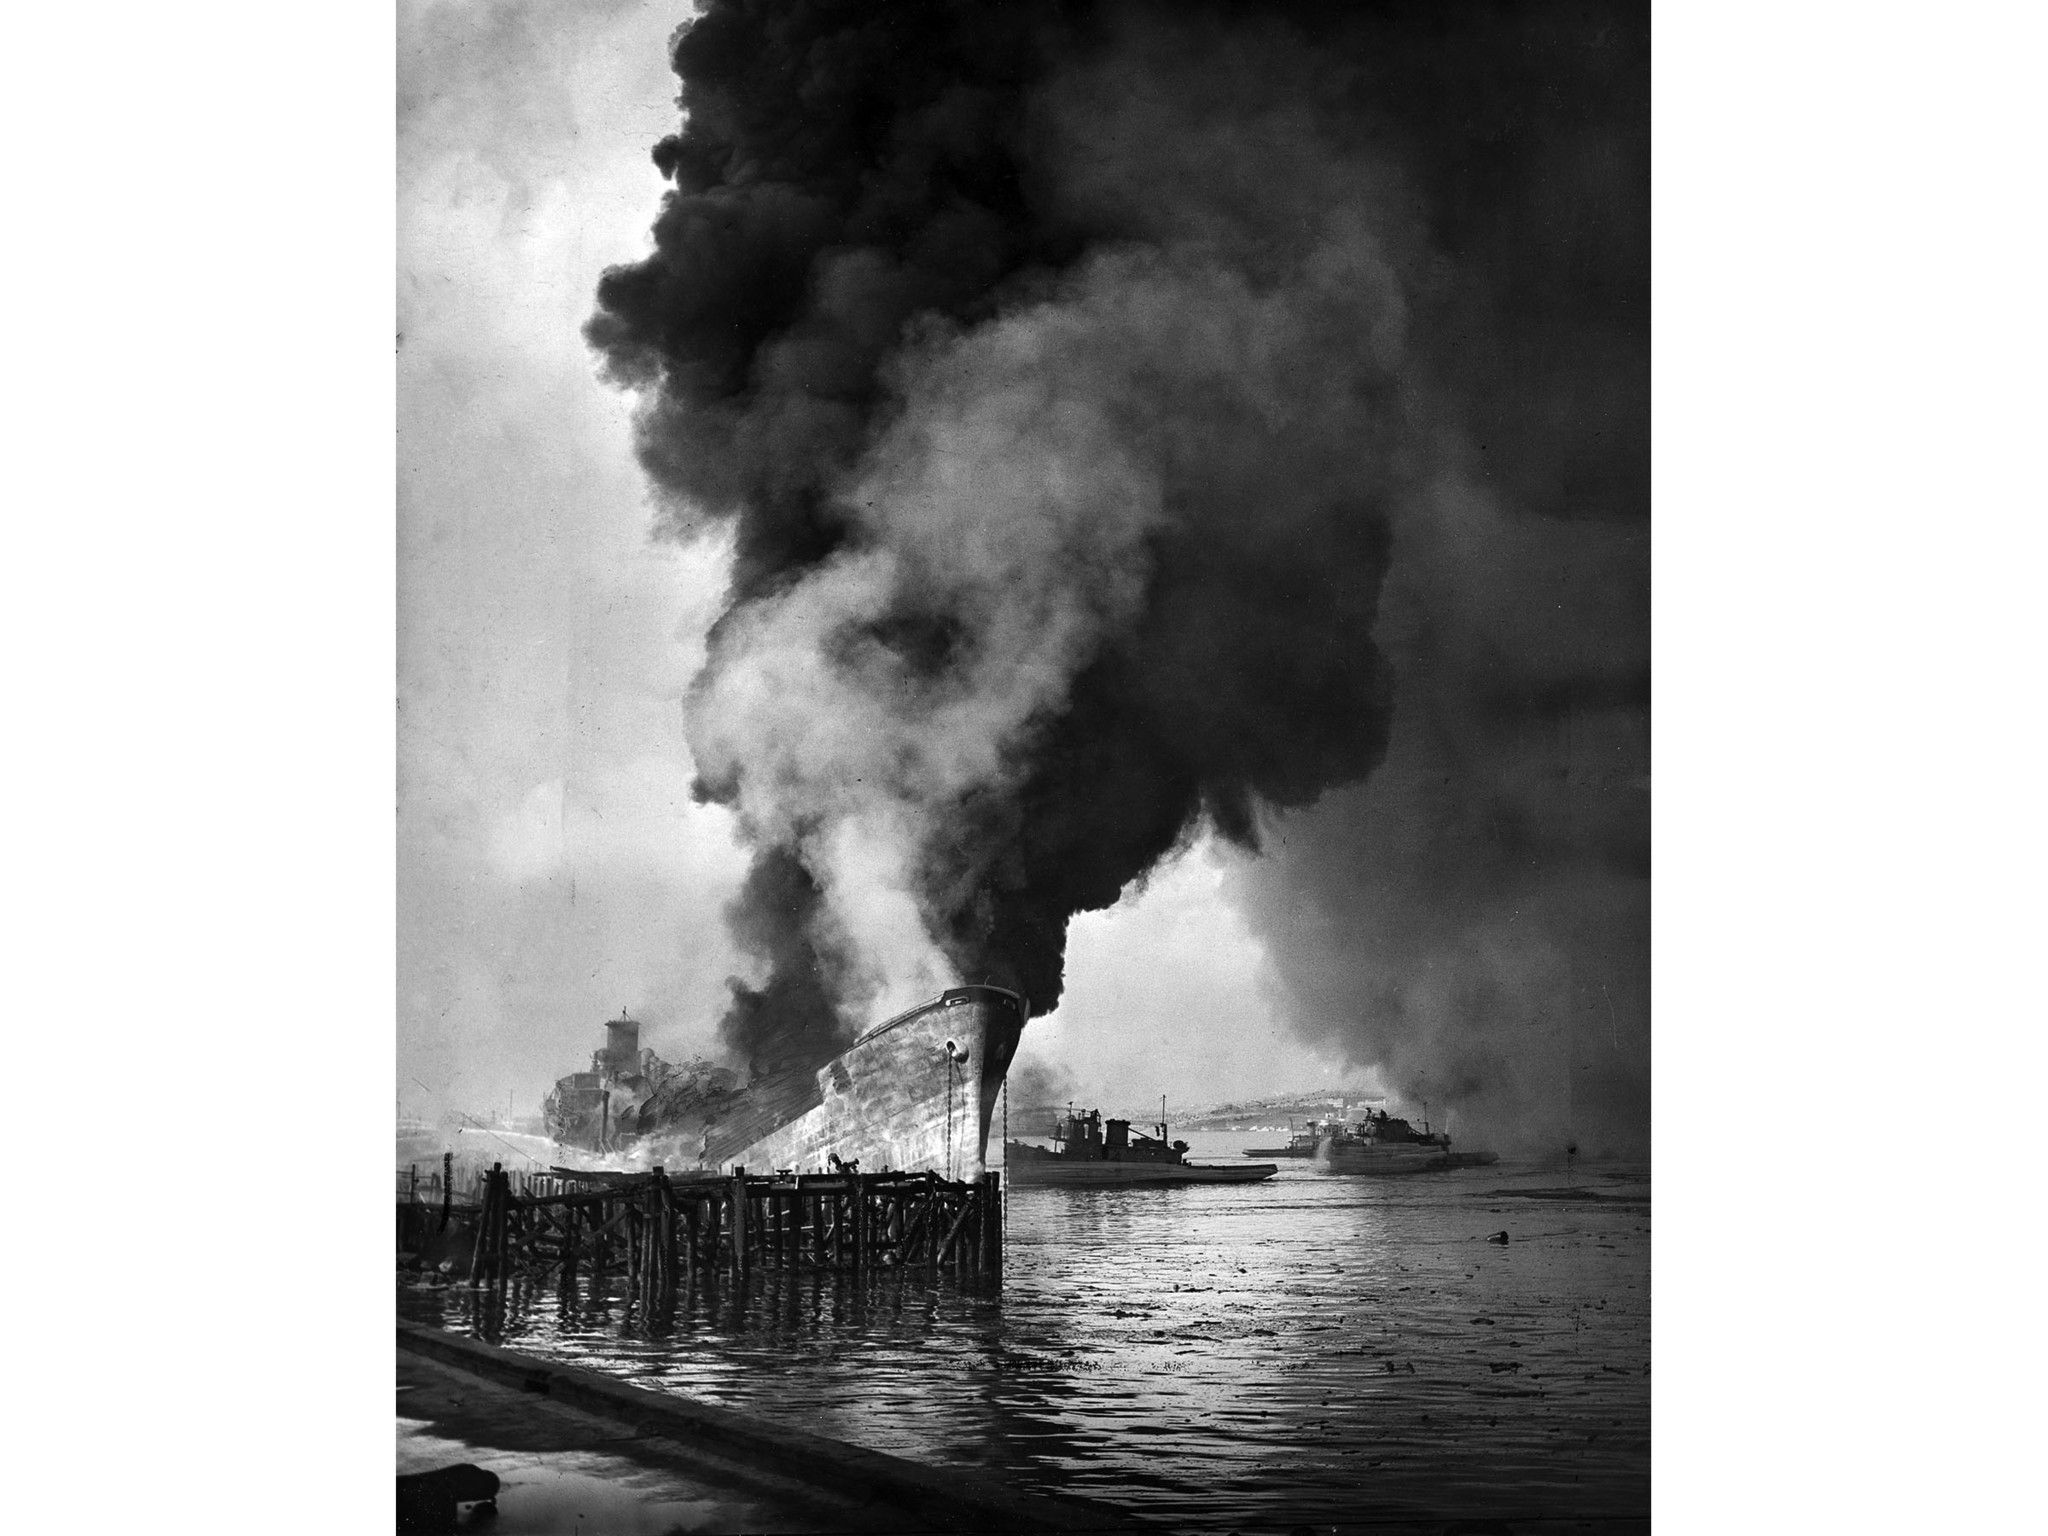 June 22, 1947: The remains of the tanker Markay burn at Los Angeles Harbor following explosion.